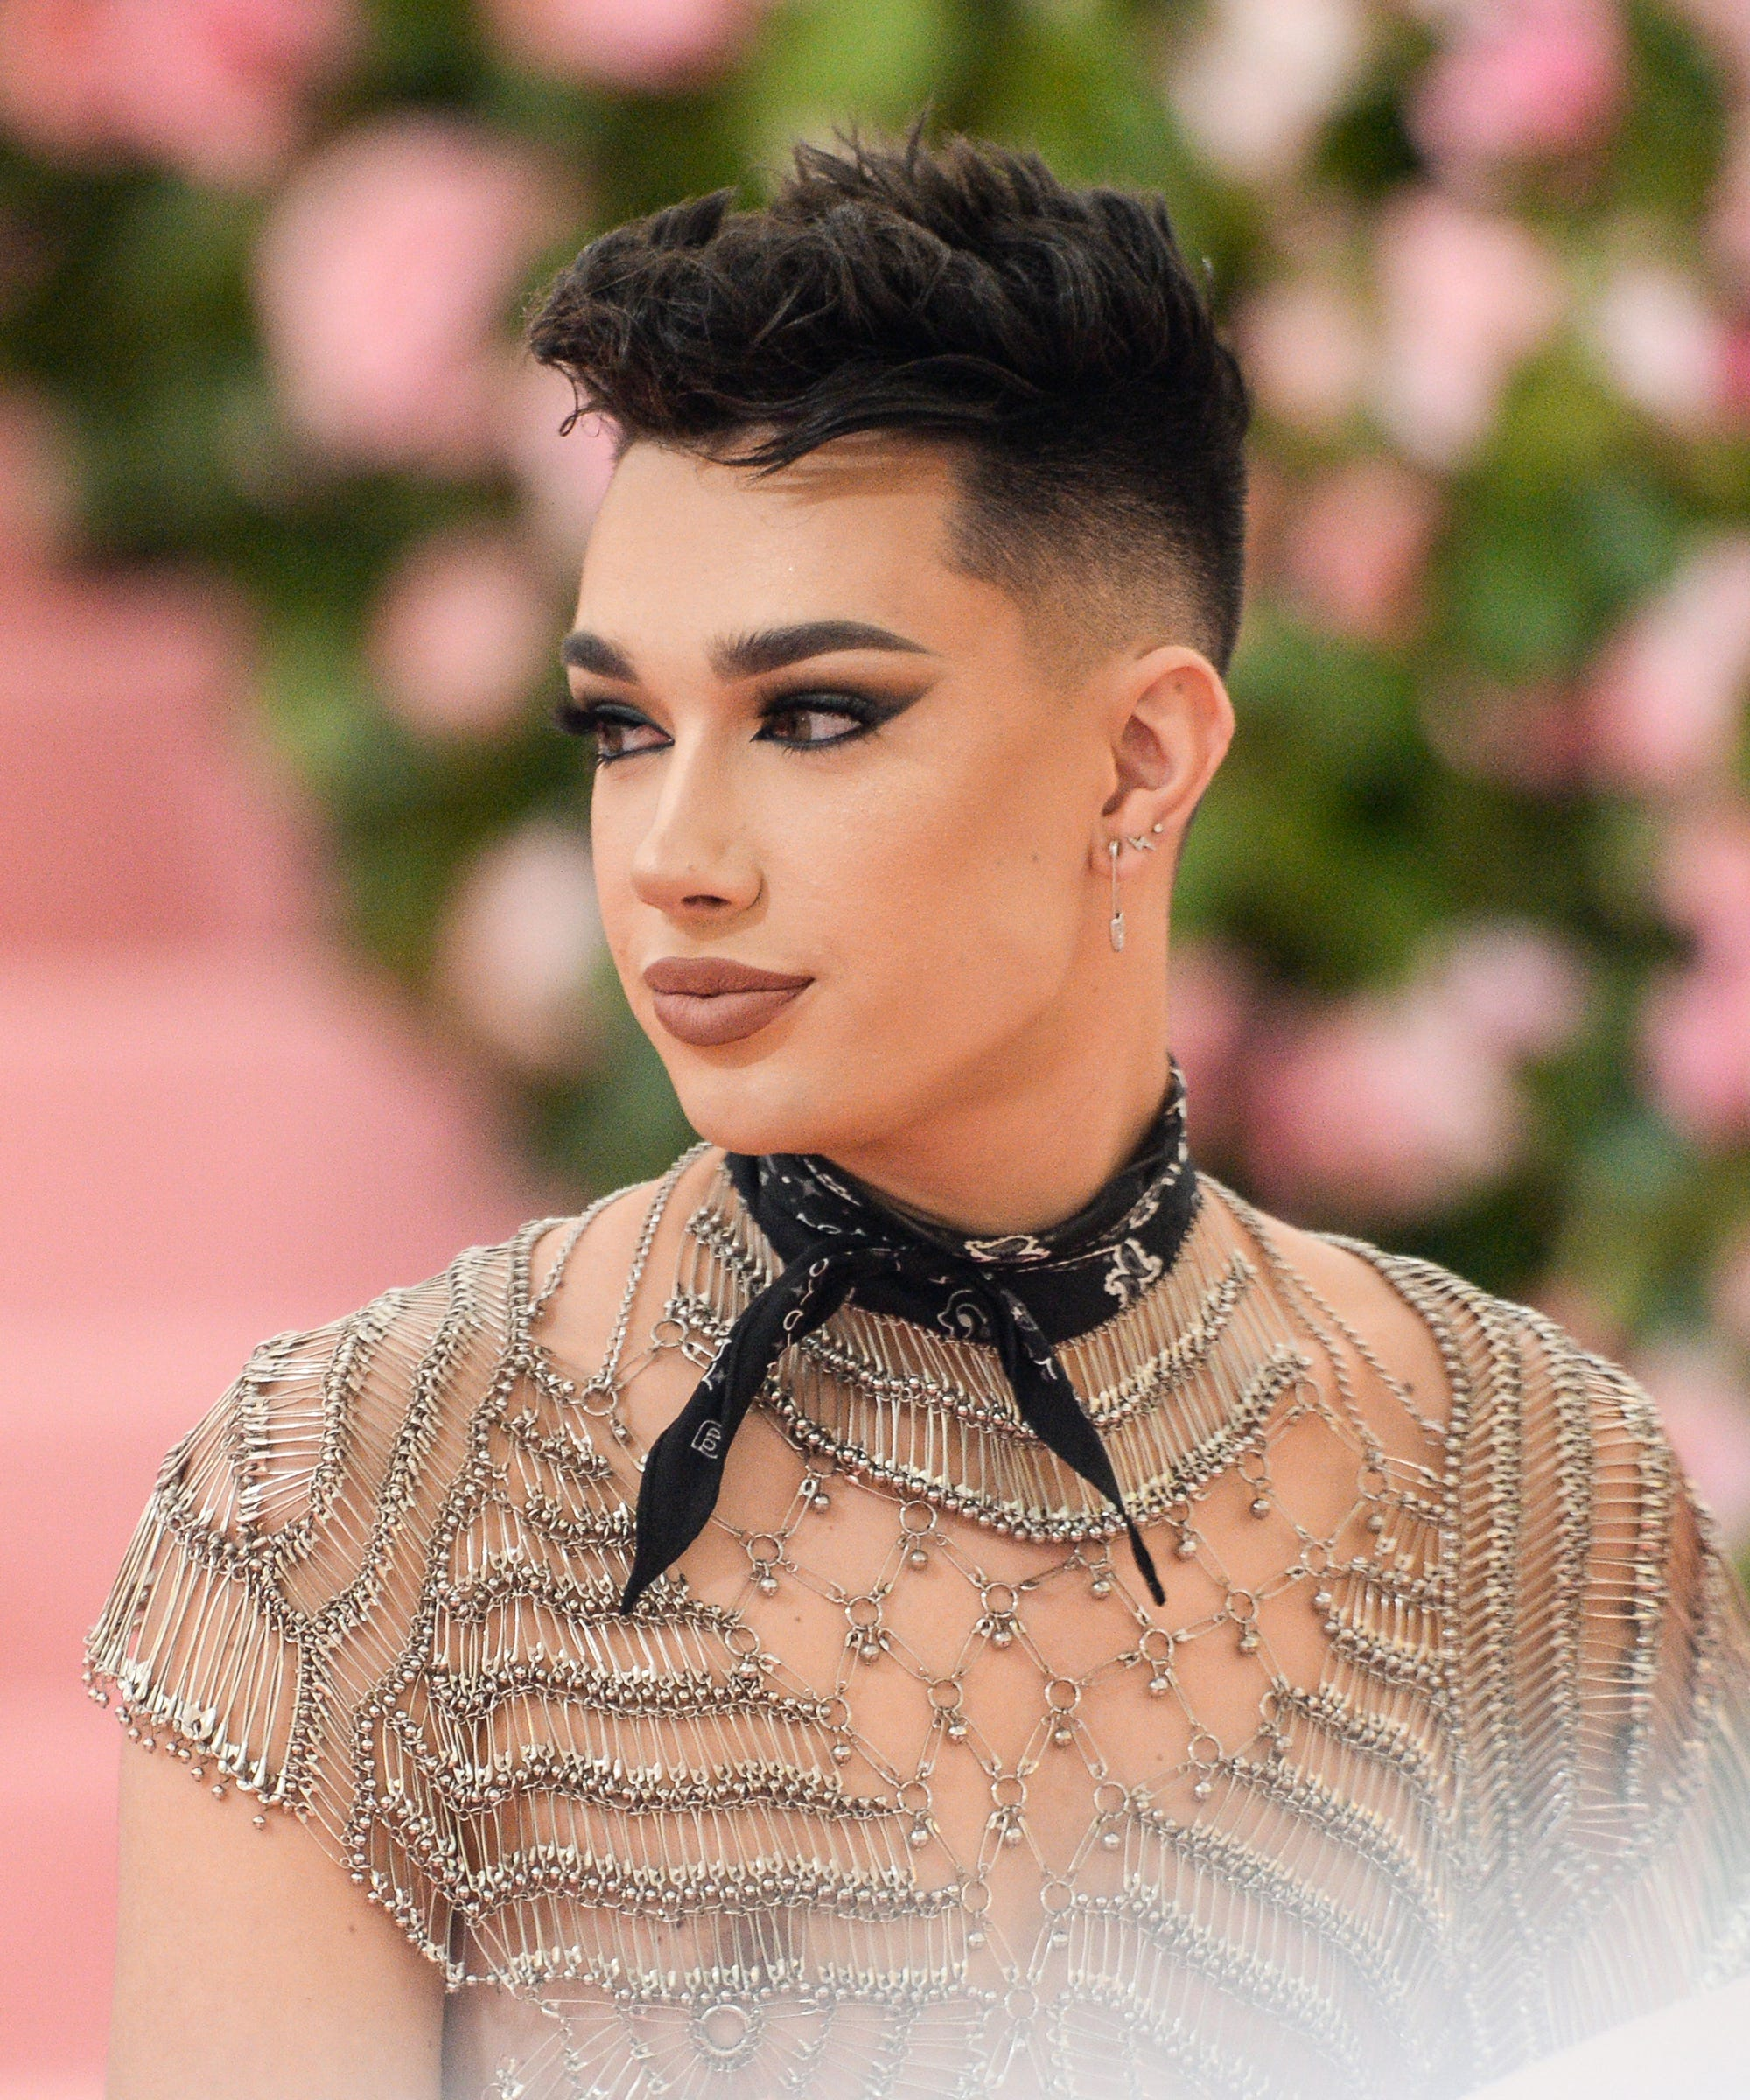 James Charles Clears The Air & Rebuts Claims Against Him In YouTube Feud